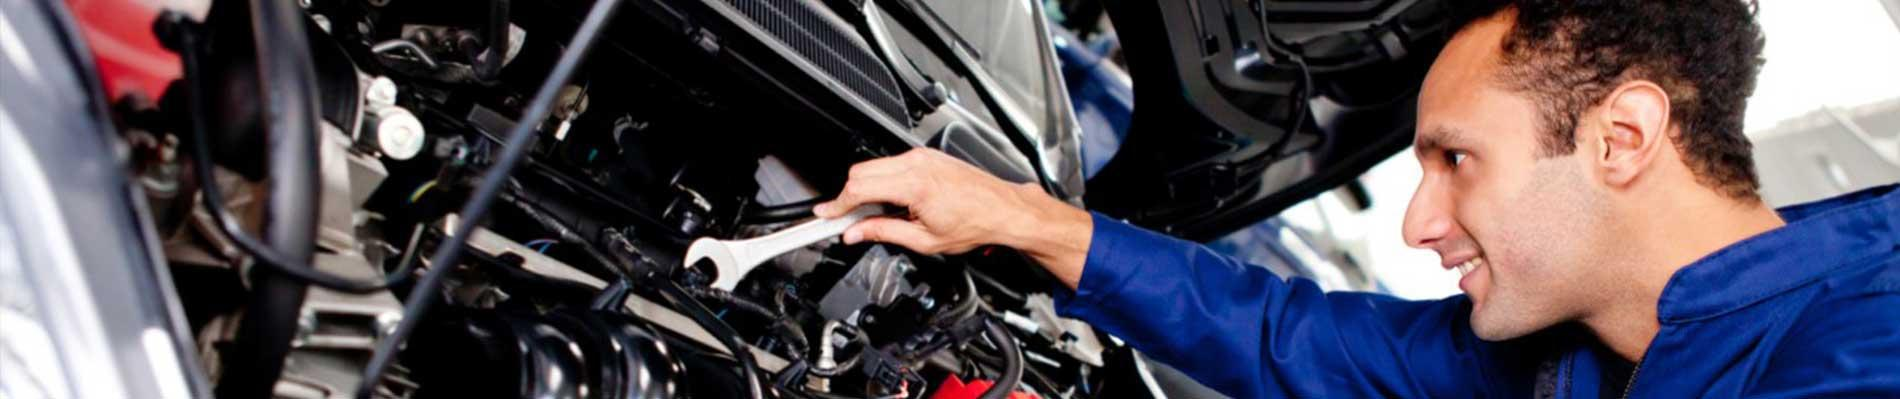 Lube & Oil Change Services in Carson City, NV